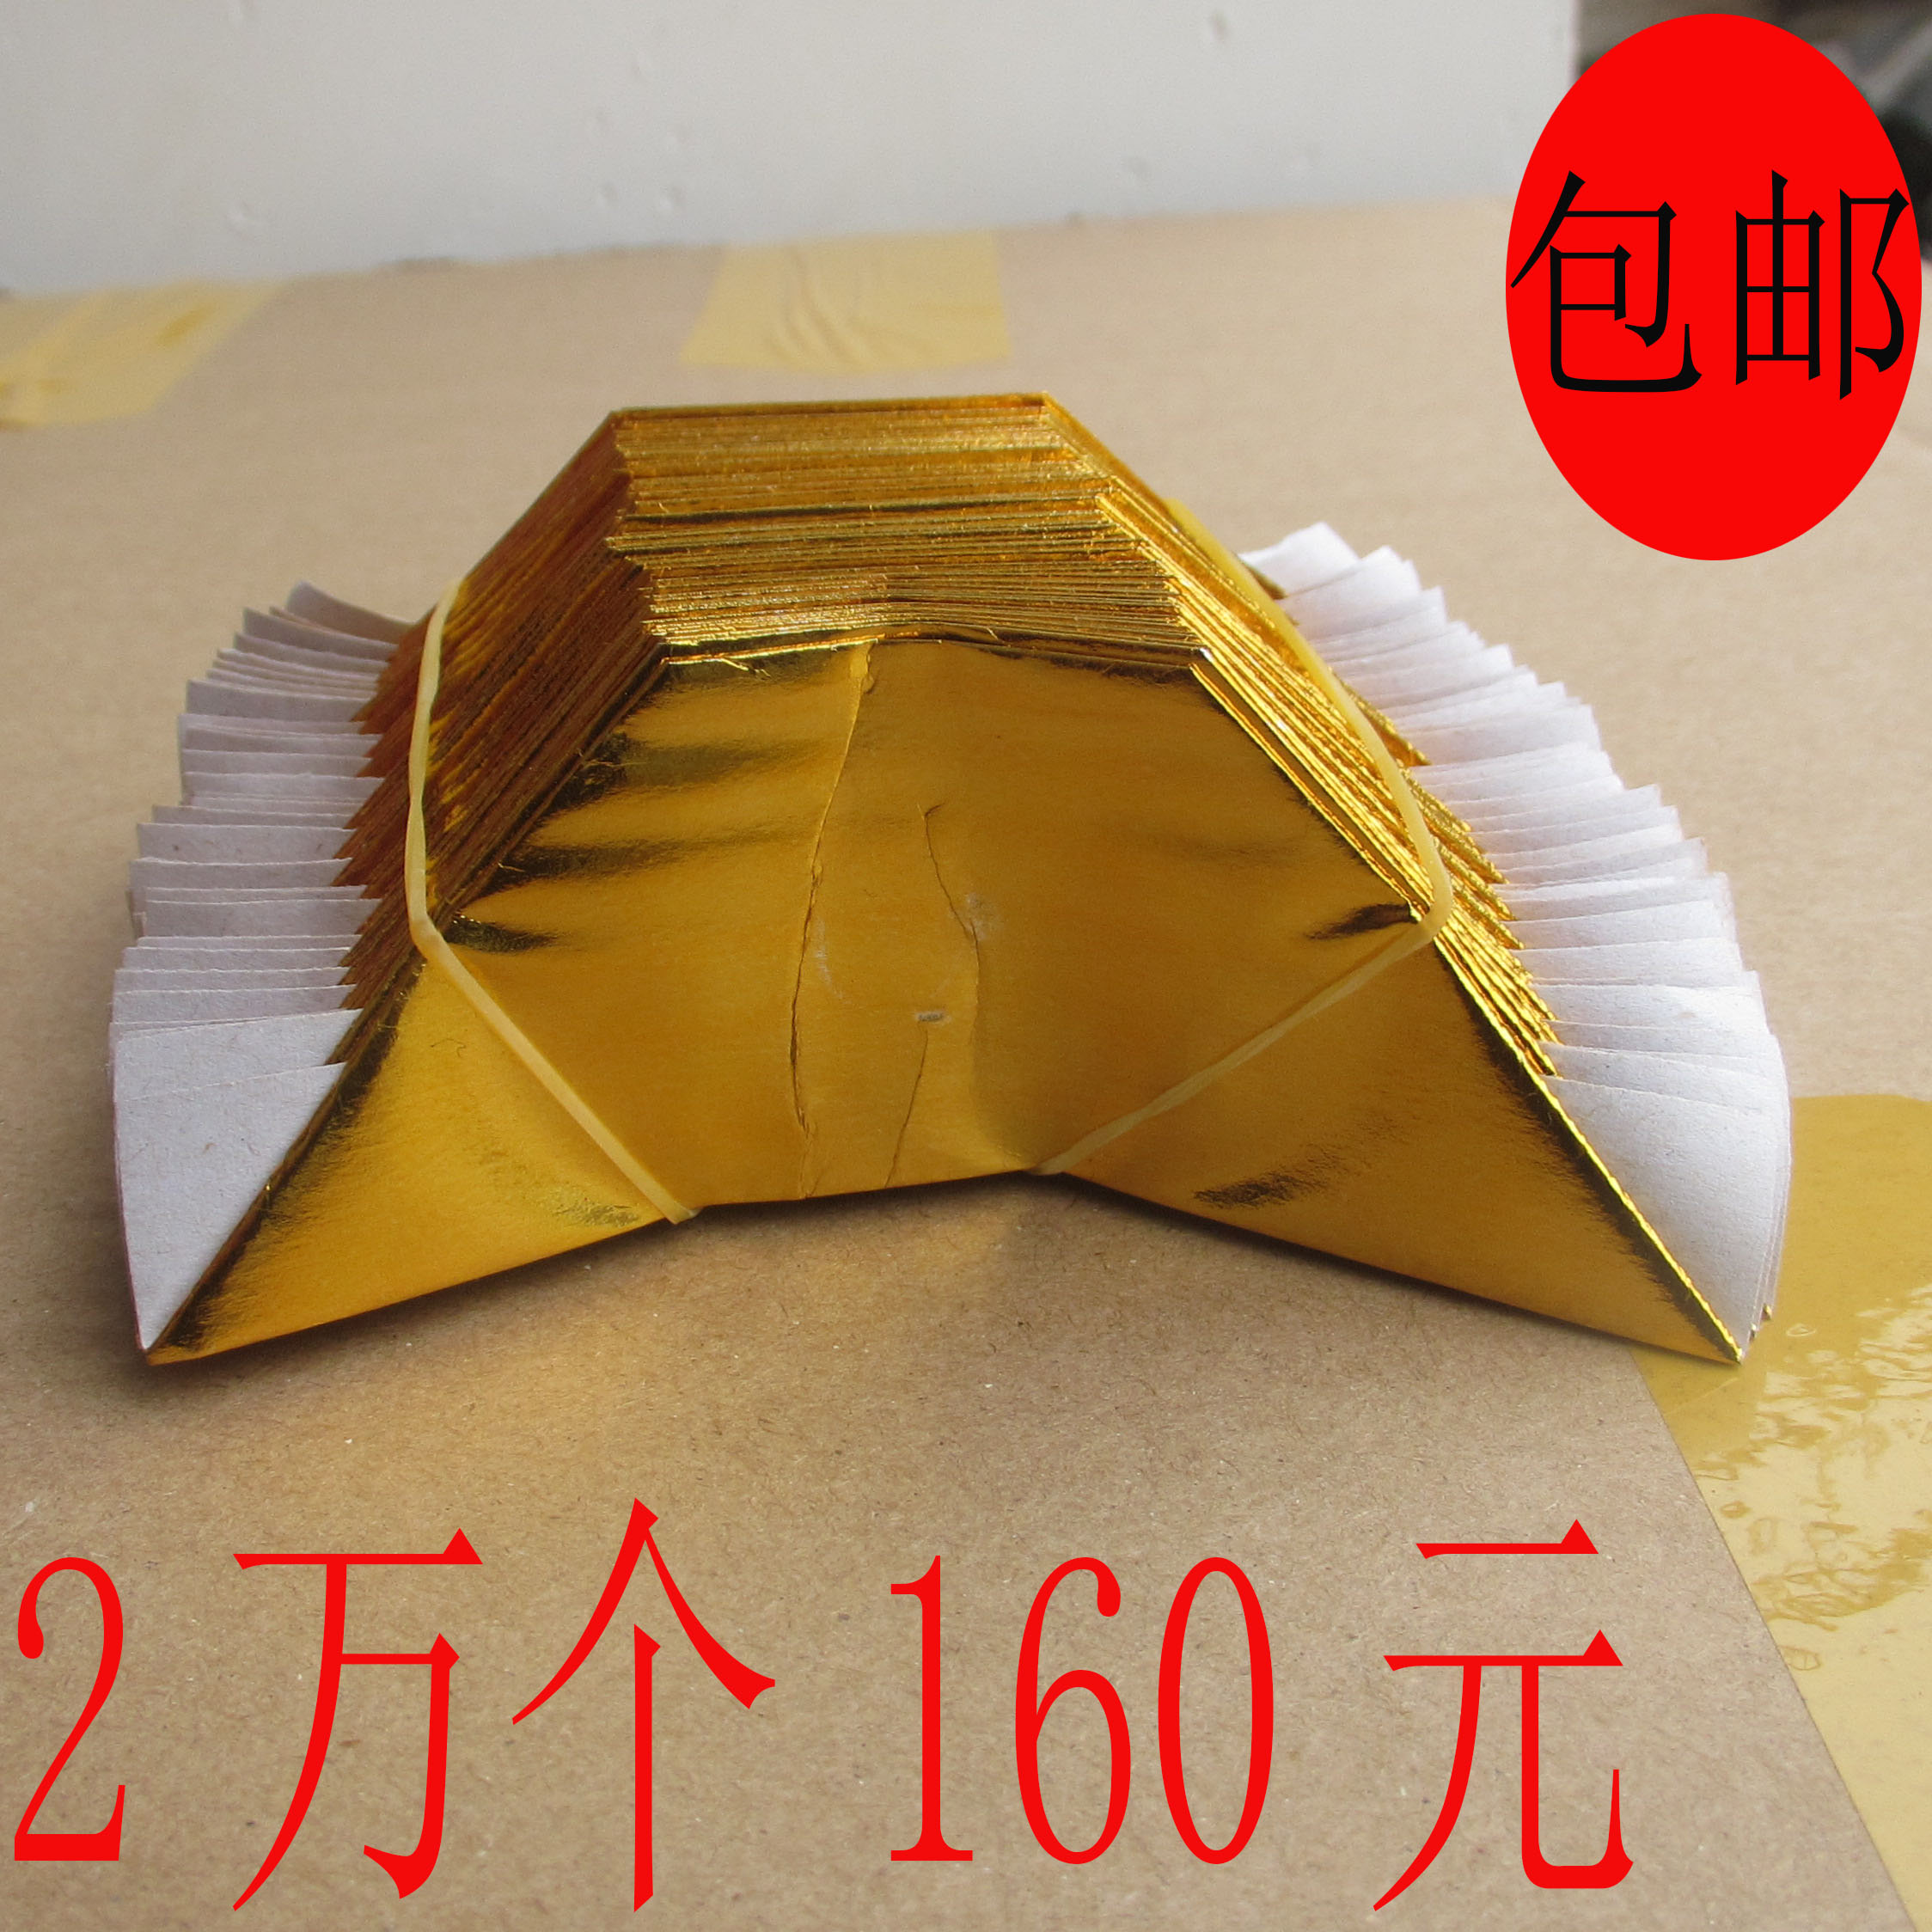 Special activities price gold Yuanbao burning paper Yuanbao paper Paper Yuanbao burning paper semi-finished sacrificial supplies